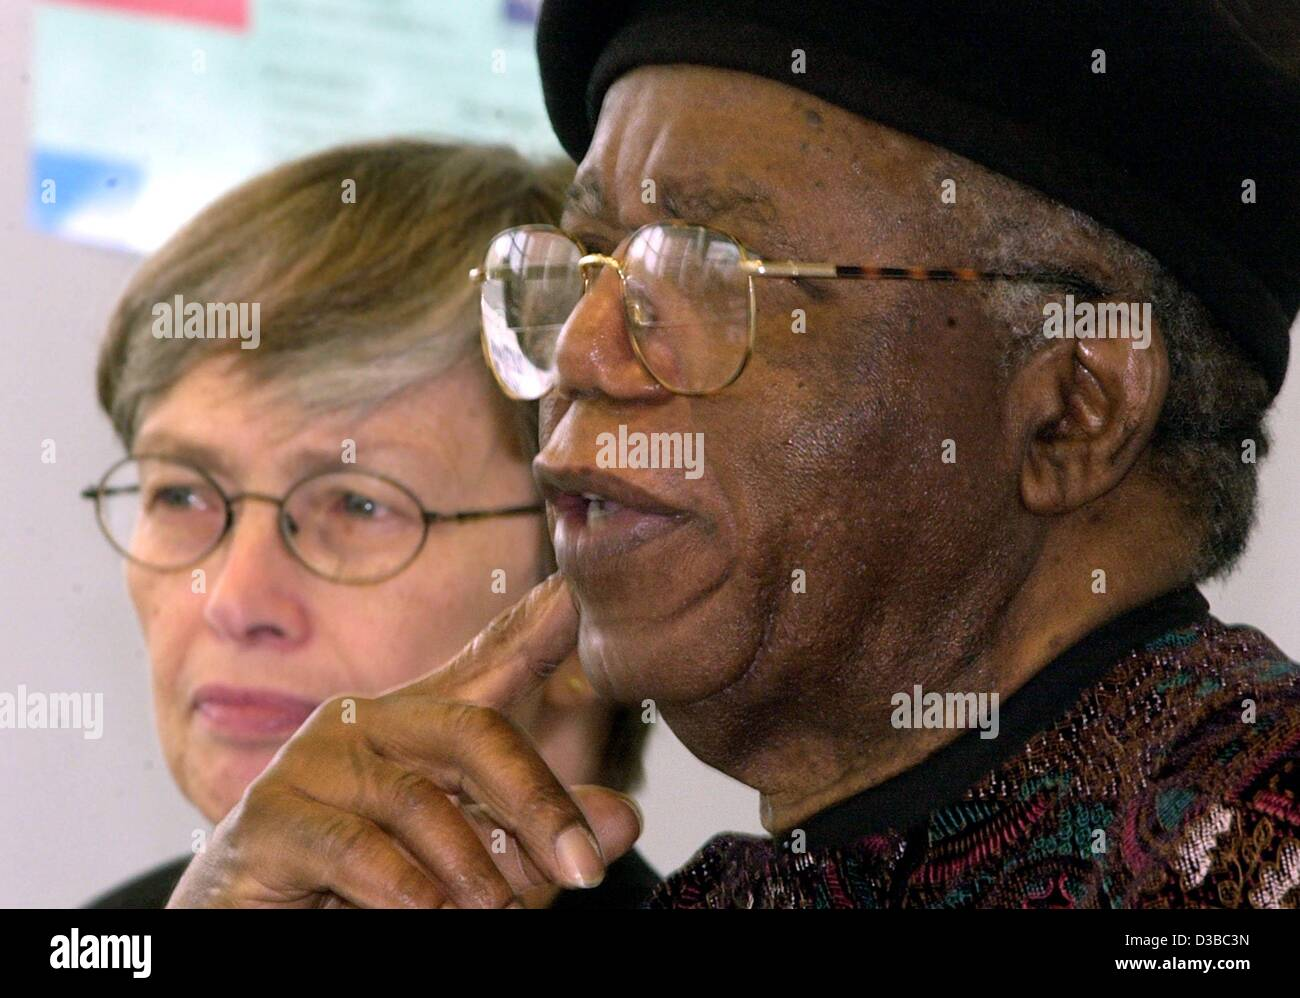 chinua achebe stock photos chinua achebe stock images  dpa ian author chinua achebe sits next to carol bellamy secretary general